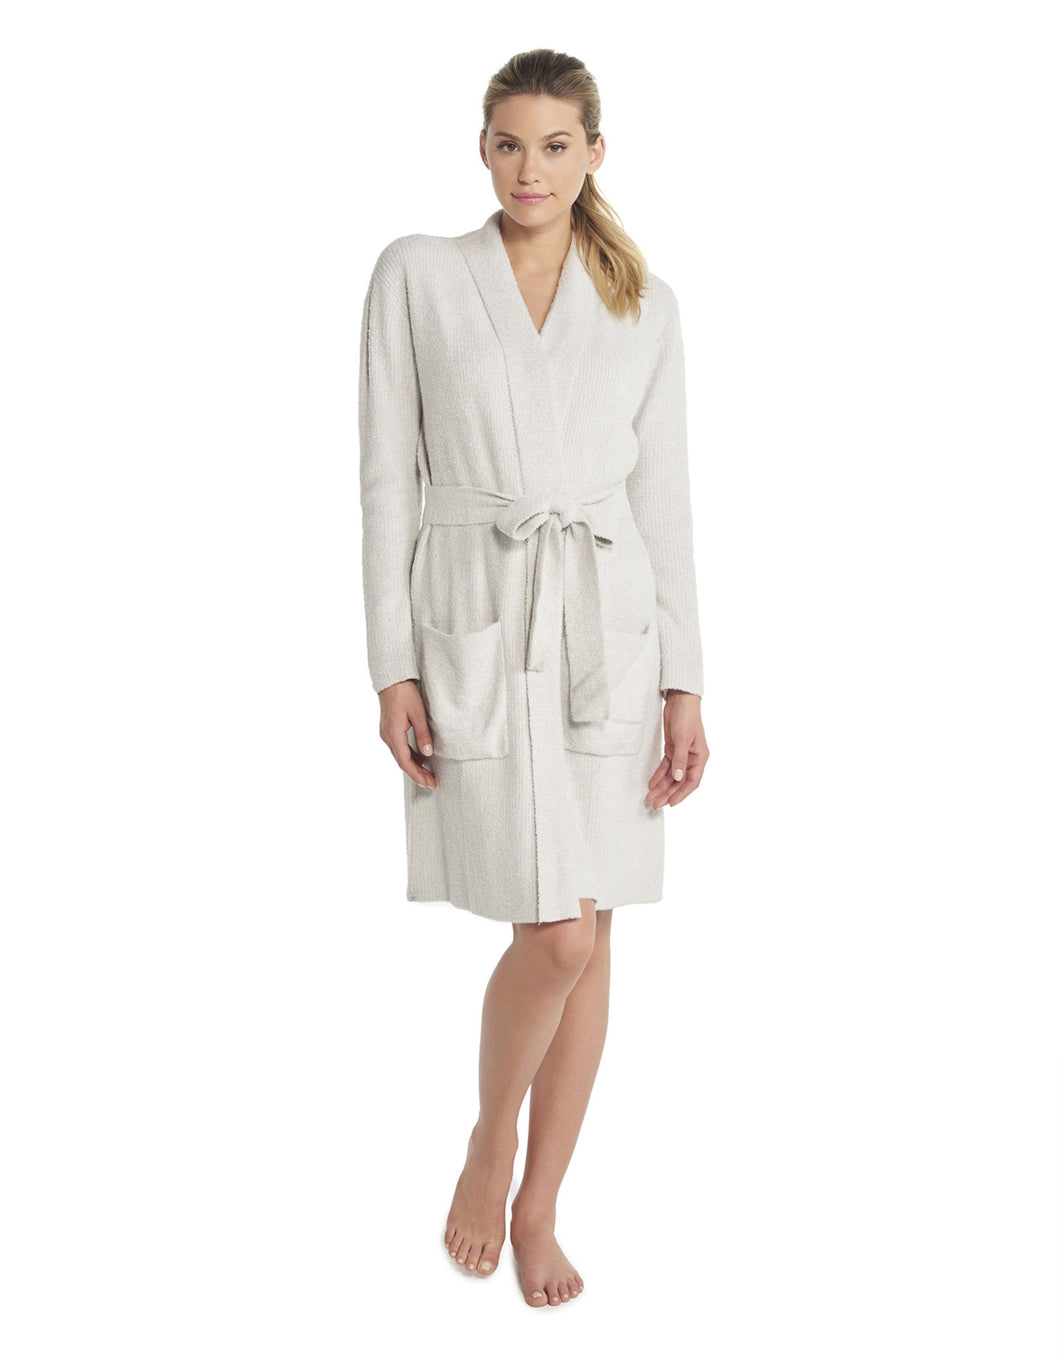 This Barefoot Dreams Heathered Silver/Pearl Ribbed Robe keeps you cozy and comfy